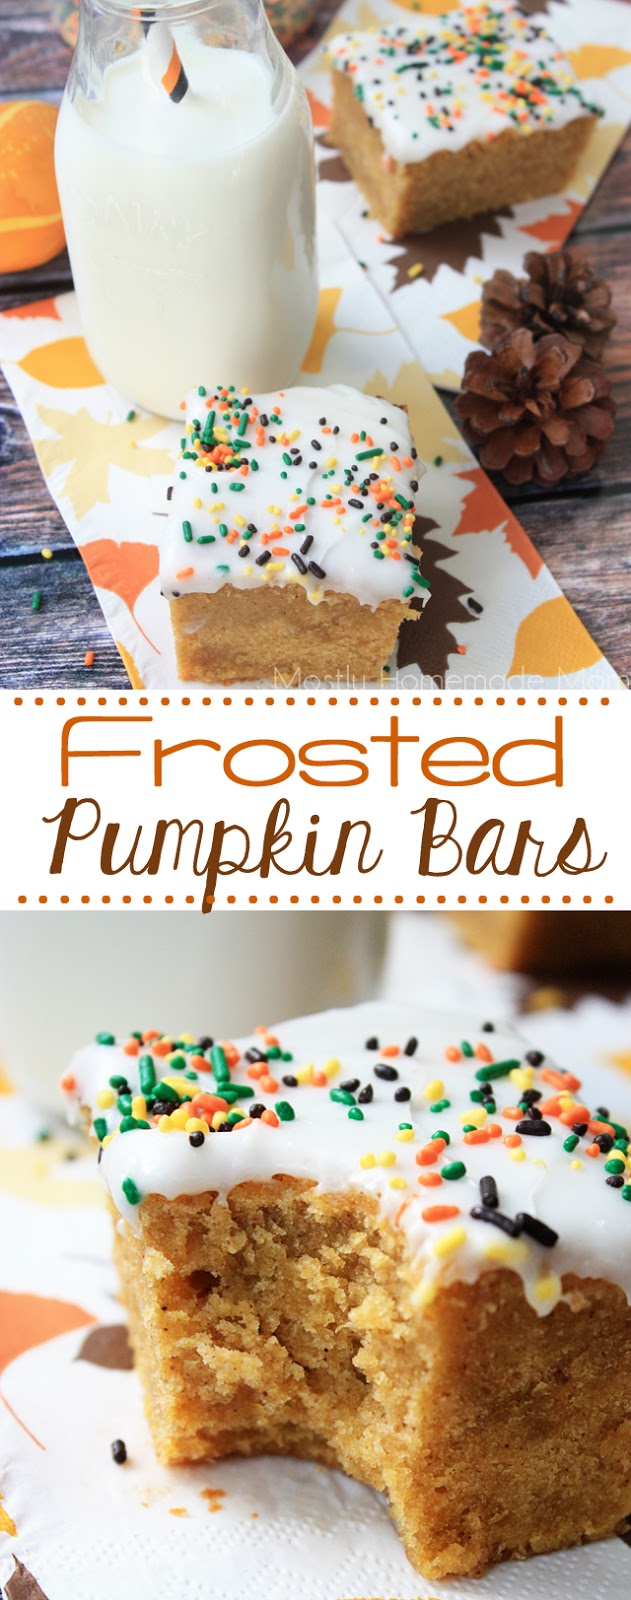 Frosted Pumpkin Bars Dessert Recipe